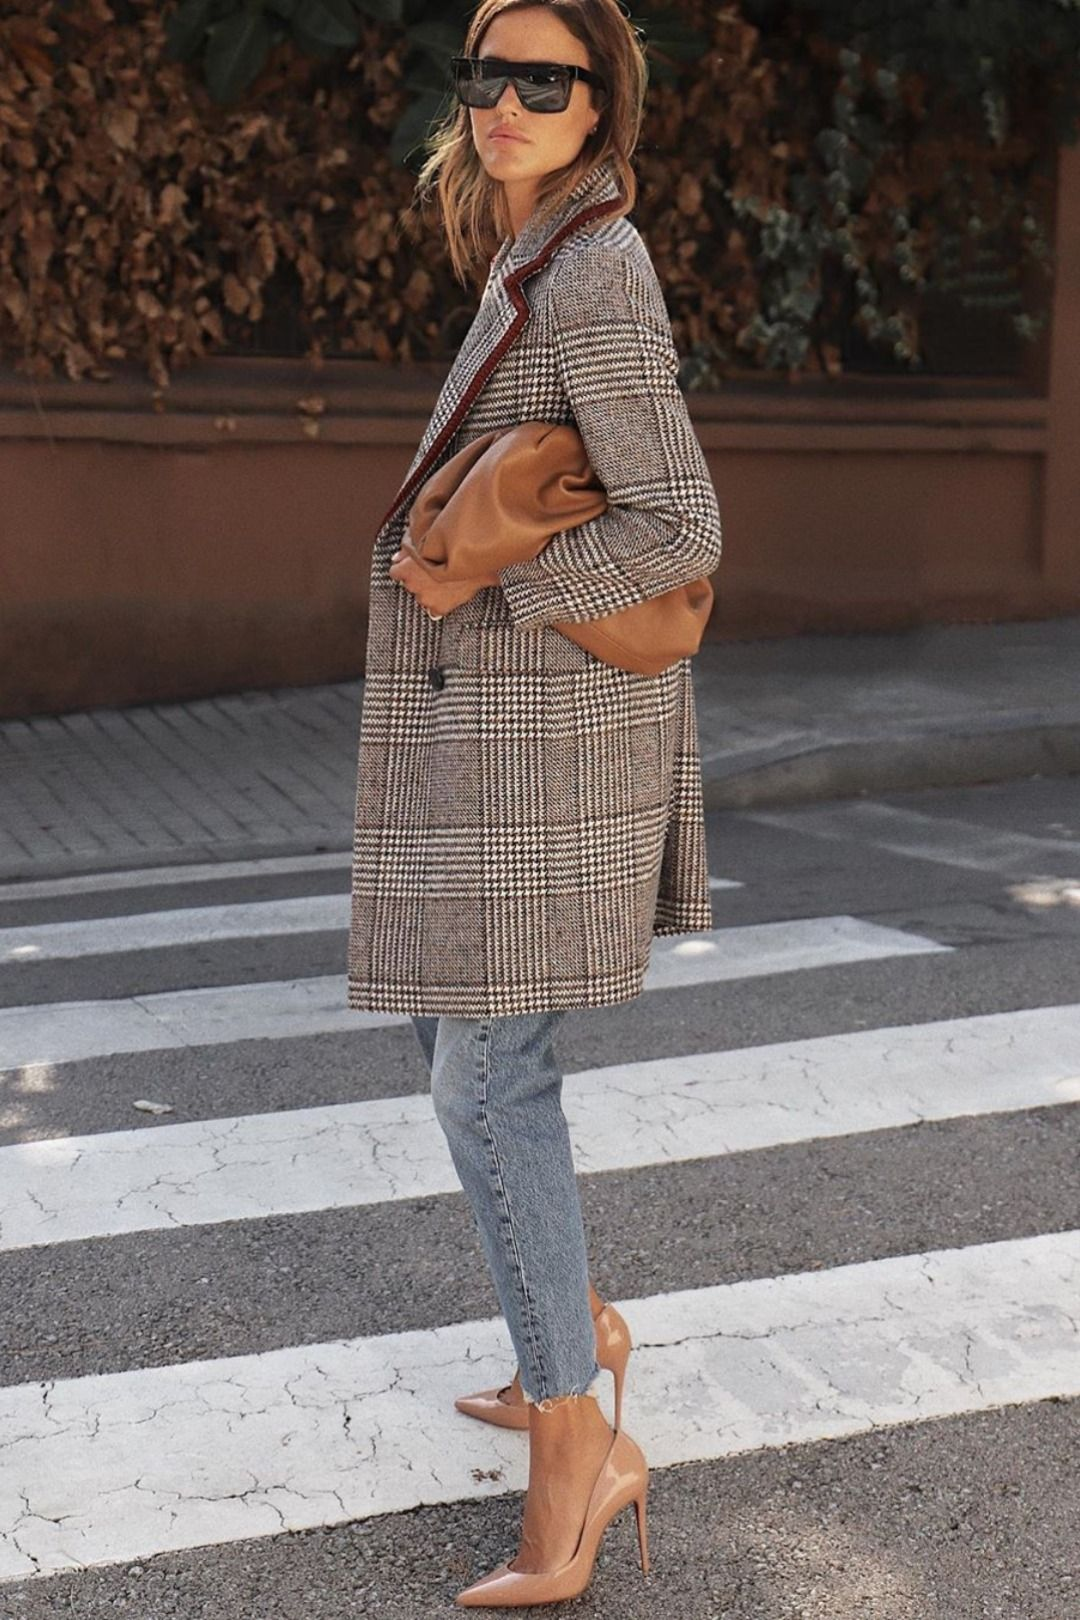 CHIC WINTER WORK OUTFITS GET YOU GOING THESE COLD MORNINGS  #modafemenina